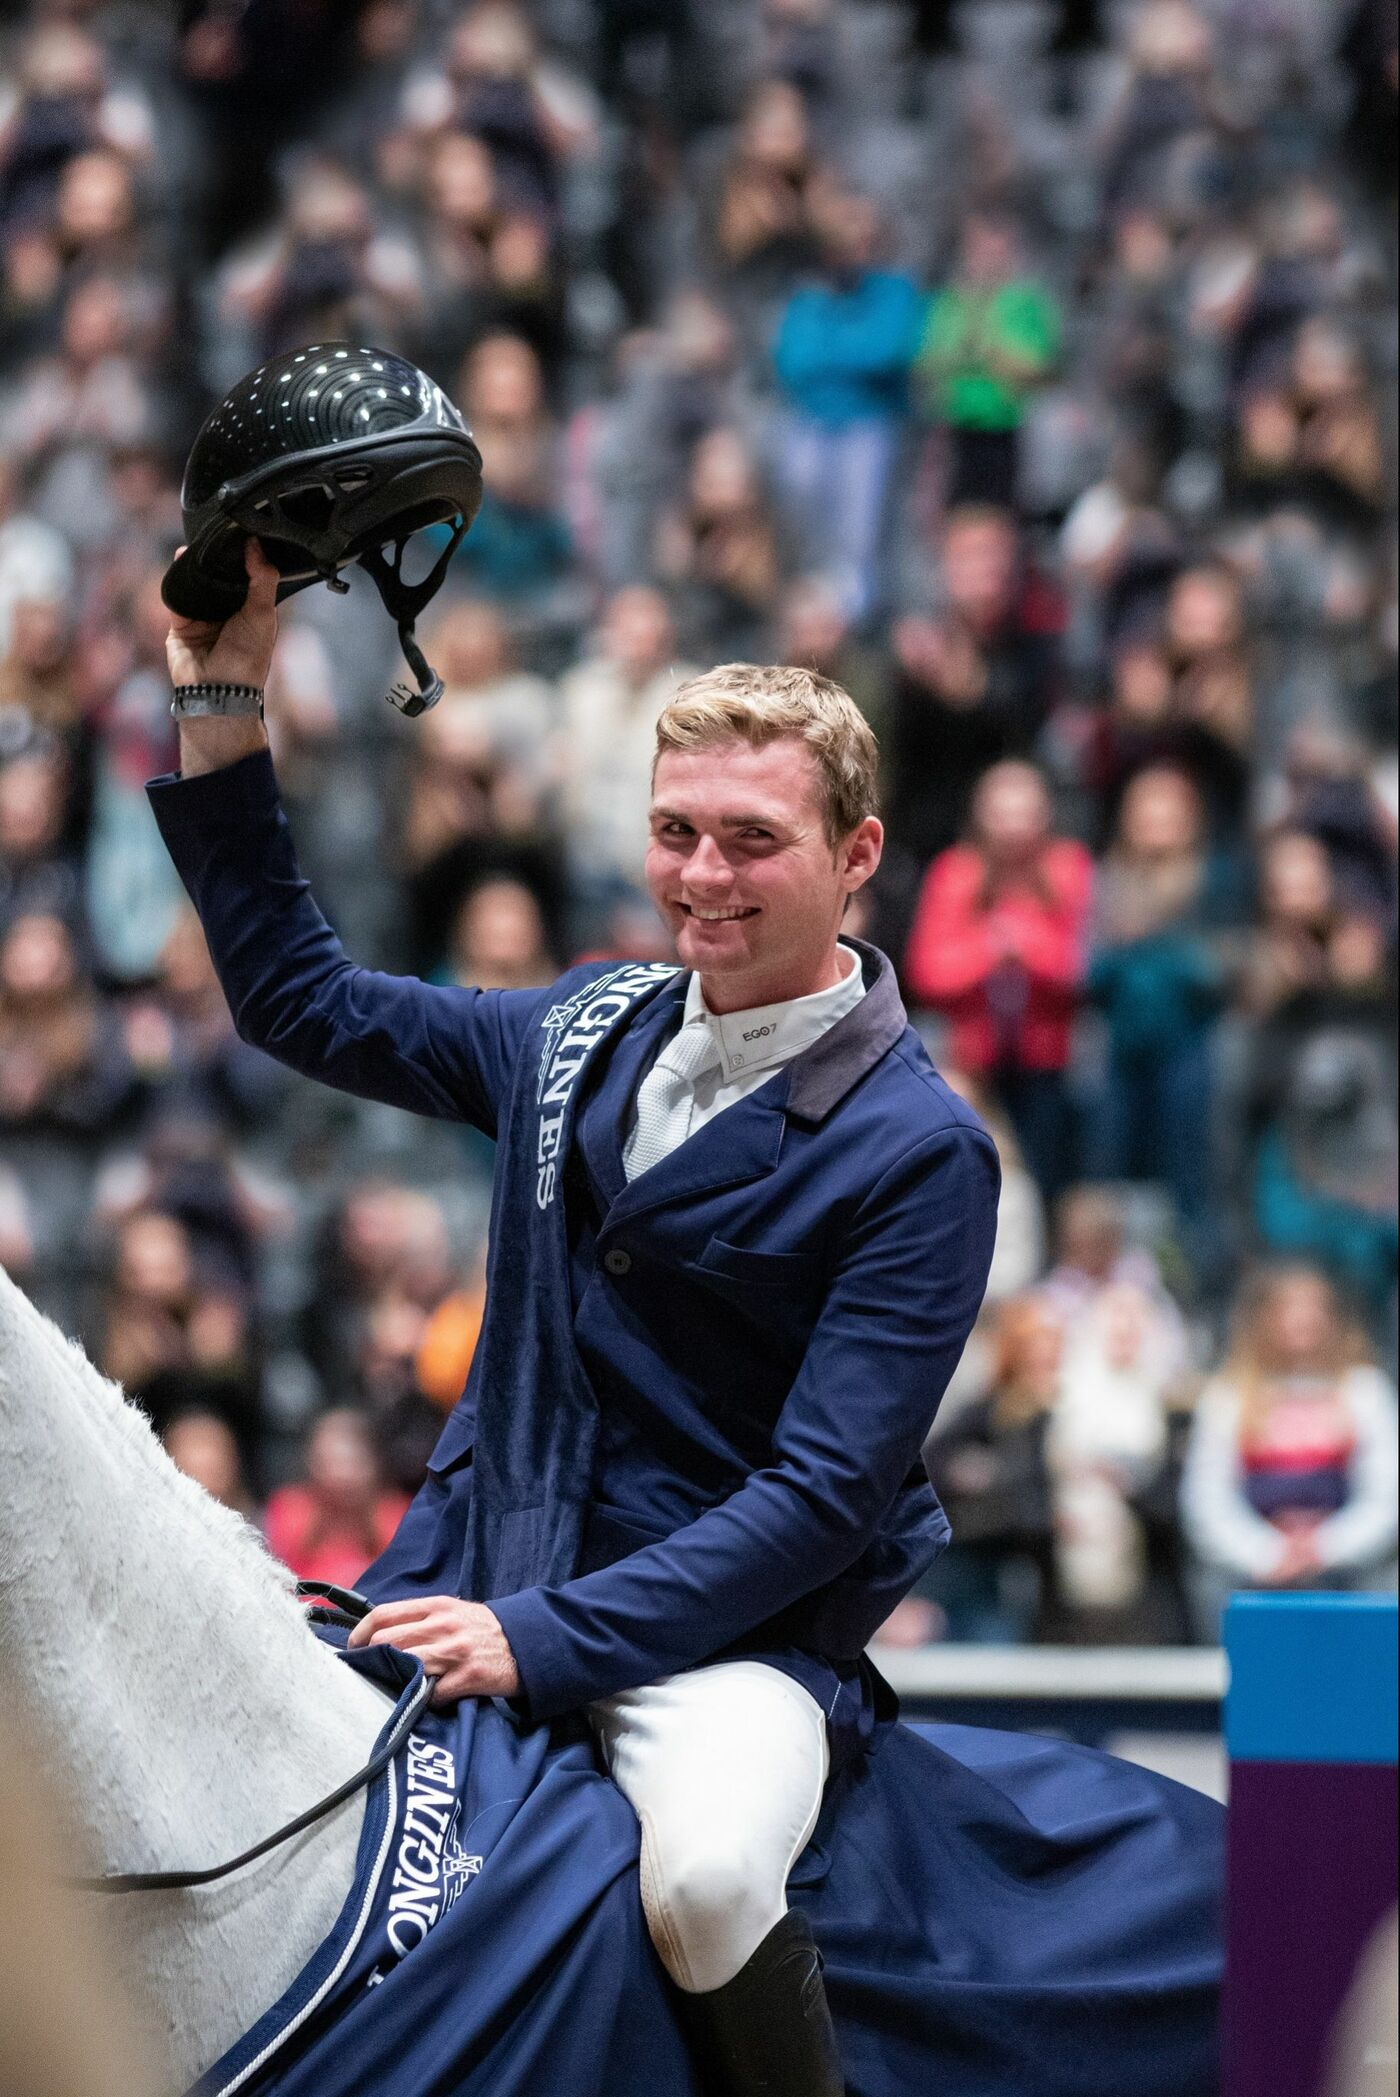 Longines Show Jumping Event: The young Swiss prodigy of show jumping Bryan Balsiger joins the Longines Family 1